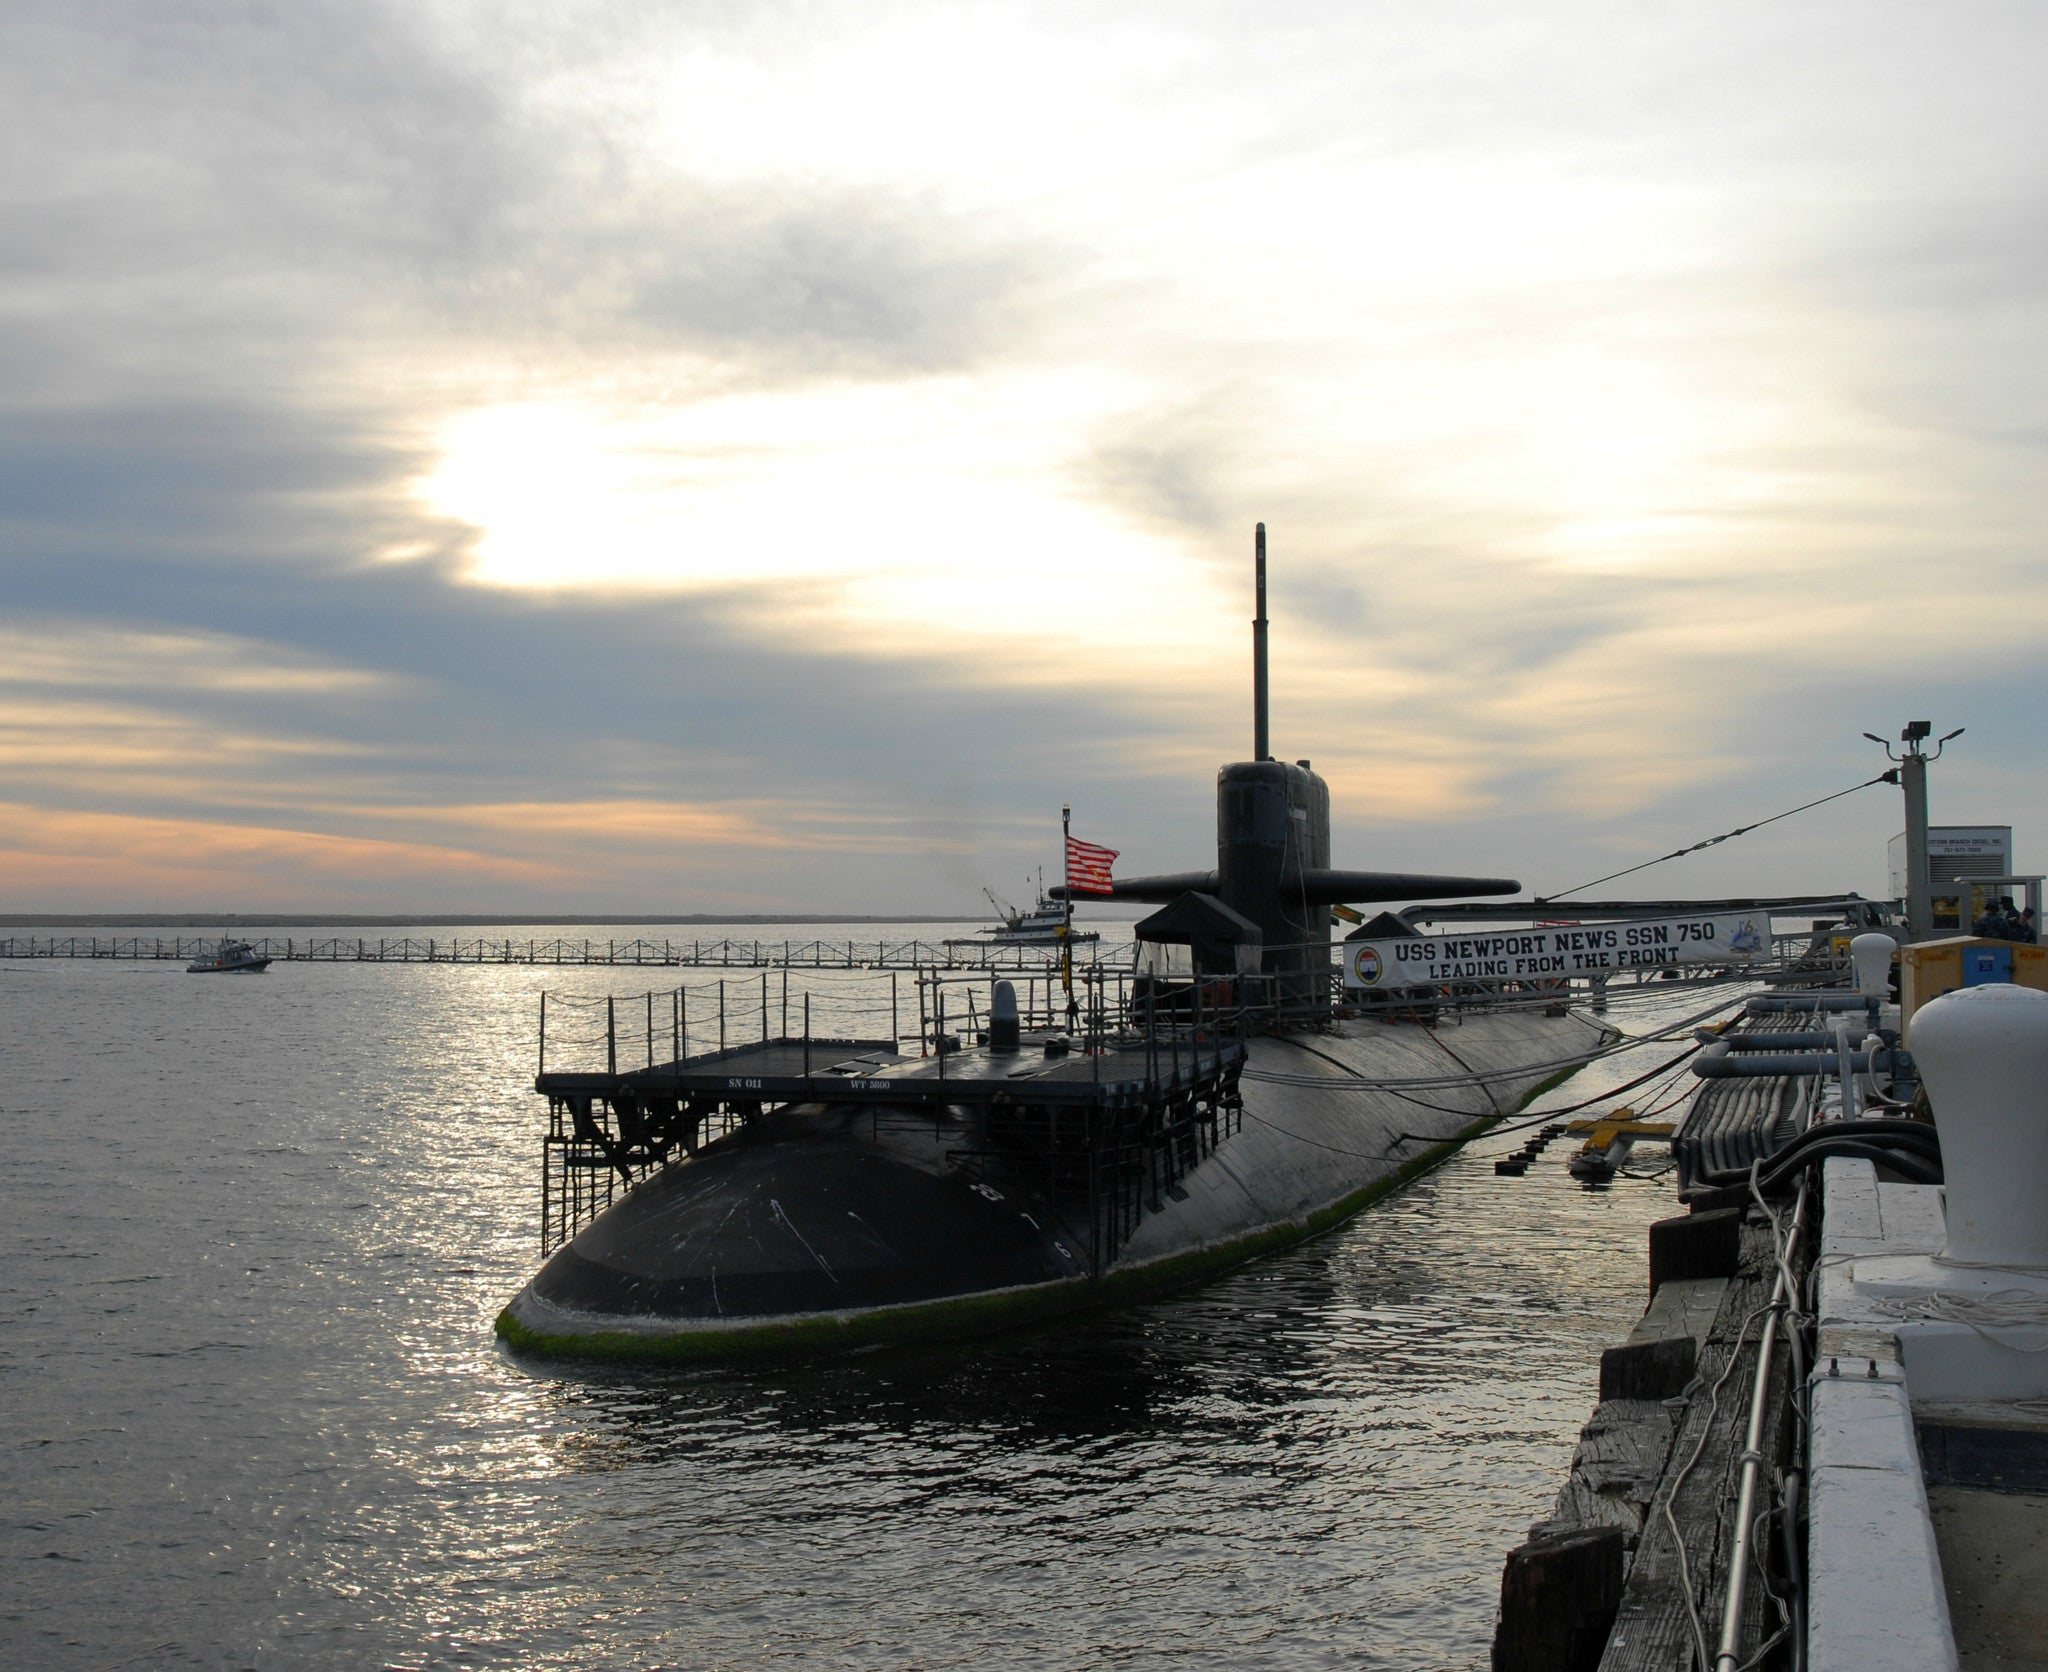 "Submarine USS Newport News SSN-750 Norfolk, VA November 16, 2011 - 8 x 10"" Photograph"